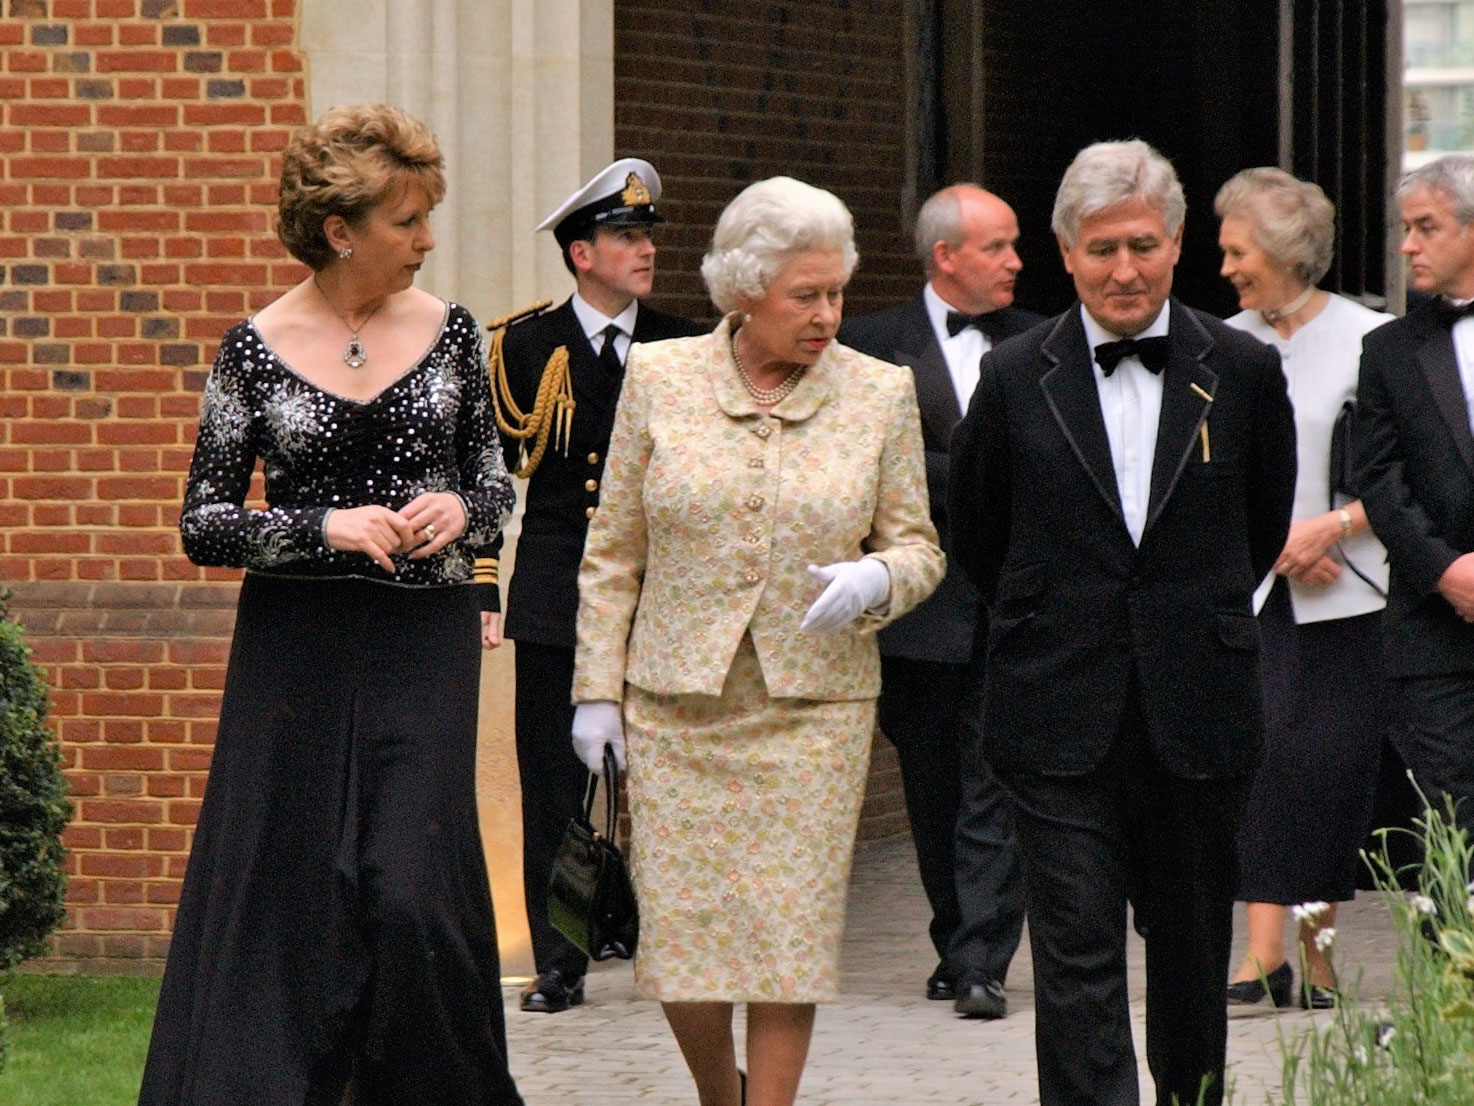 Christopher Moran with the Queen and Irish President Mary McAleese in 2005